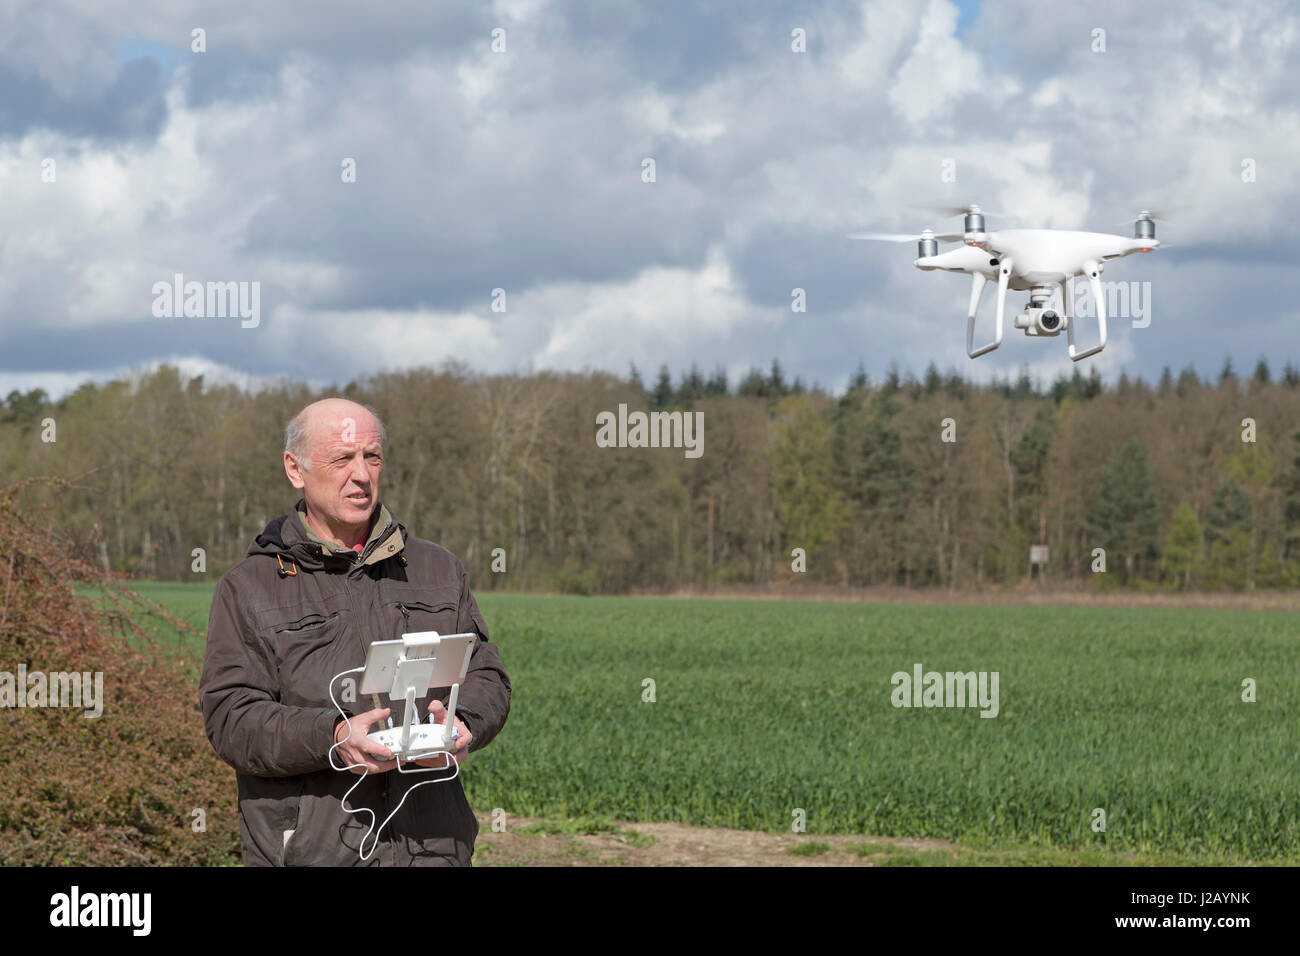 man flying drone - Stock Image